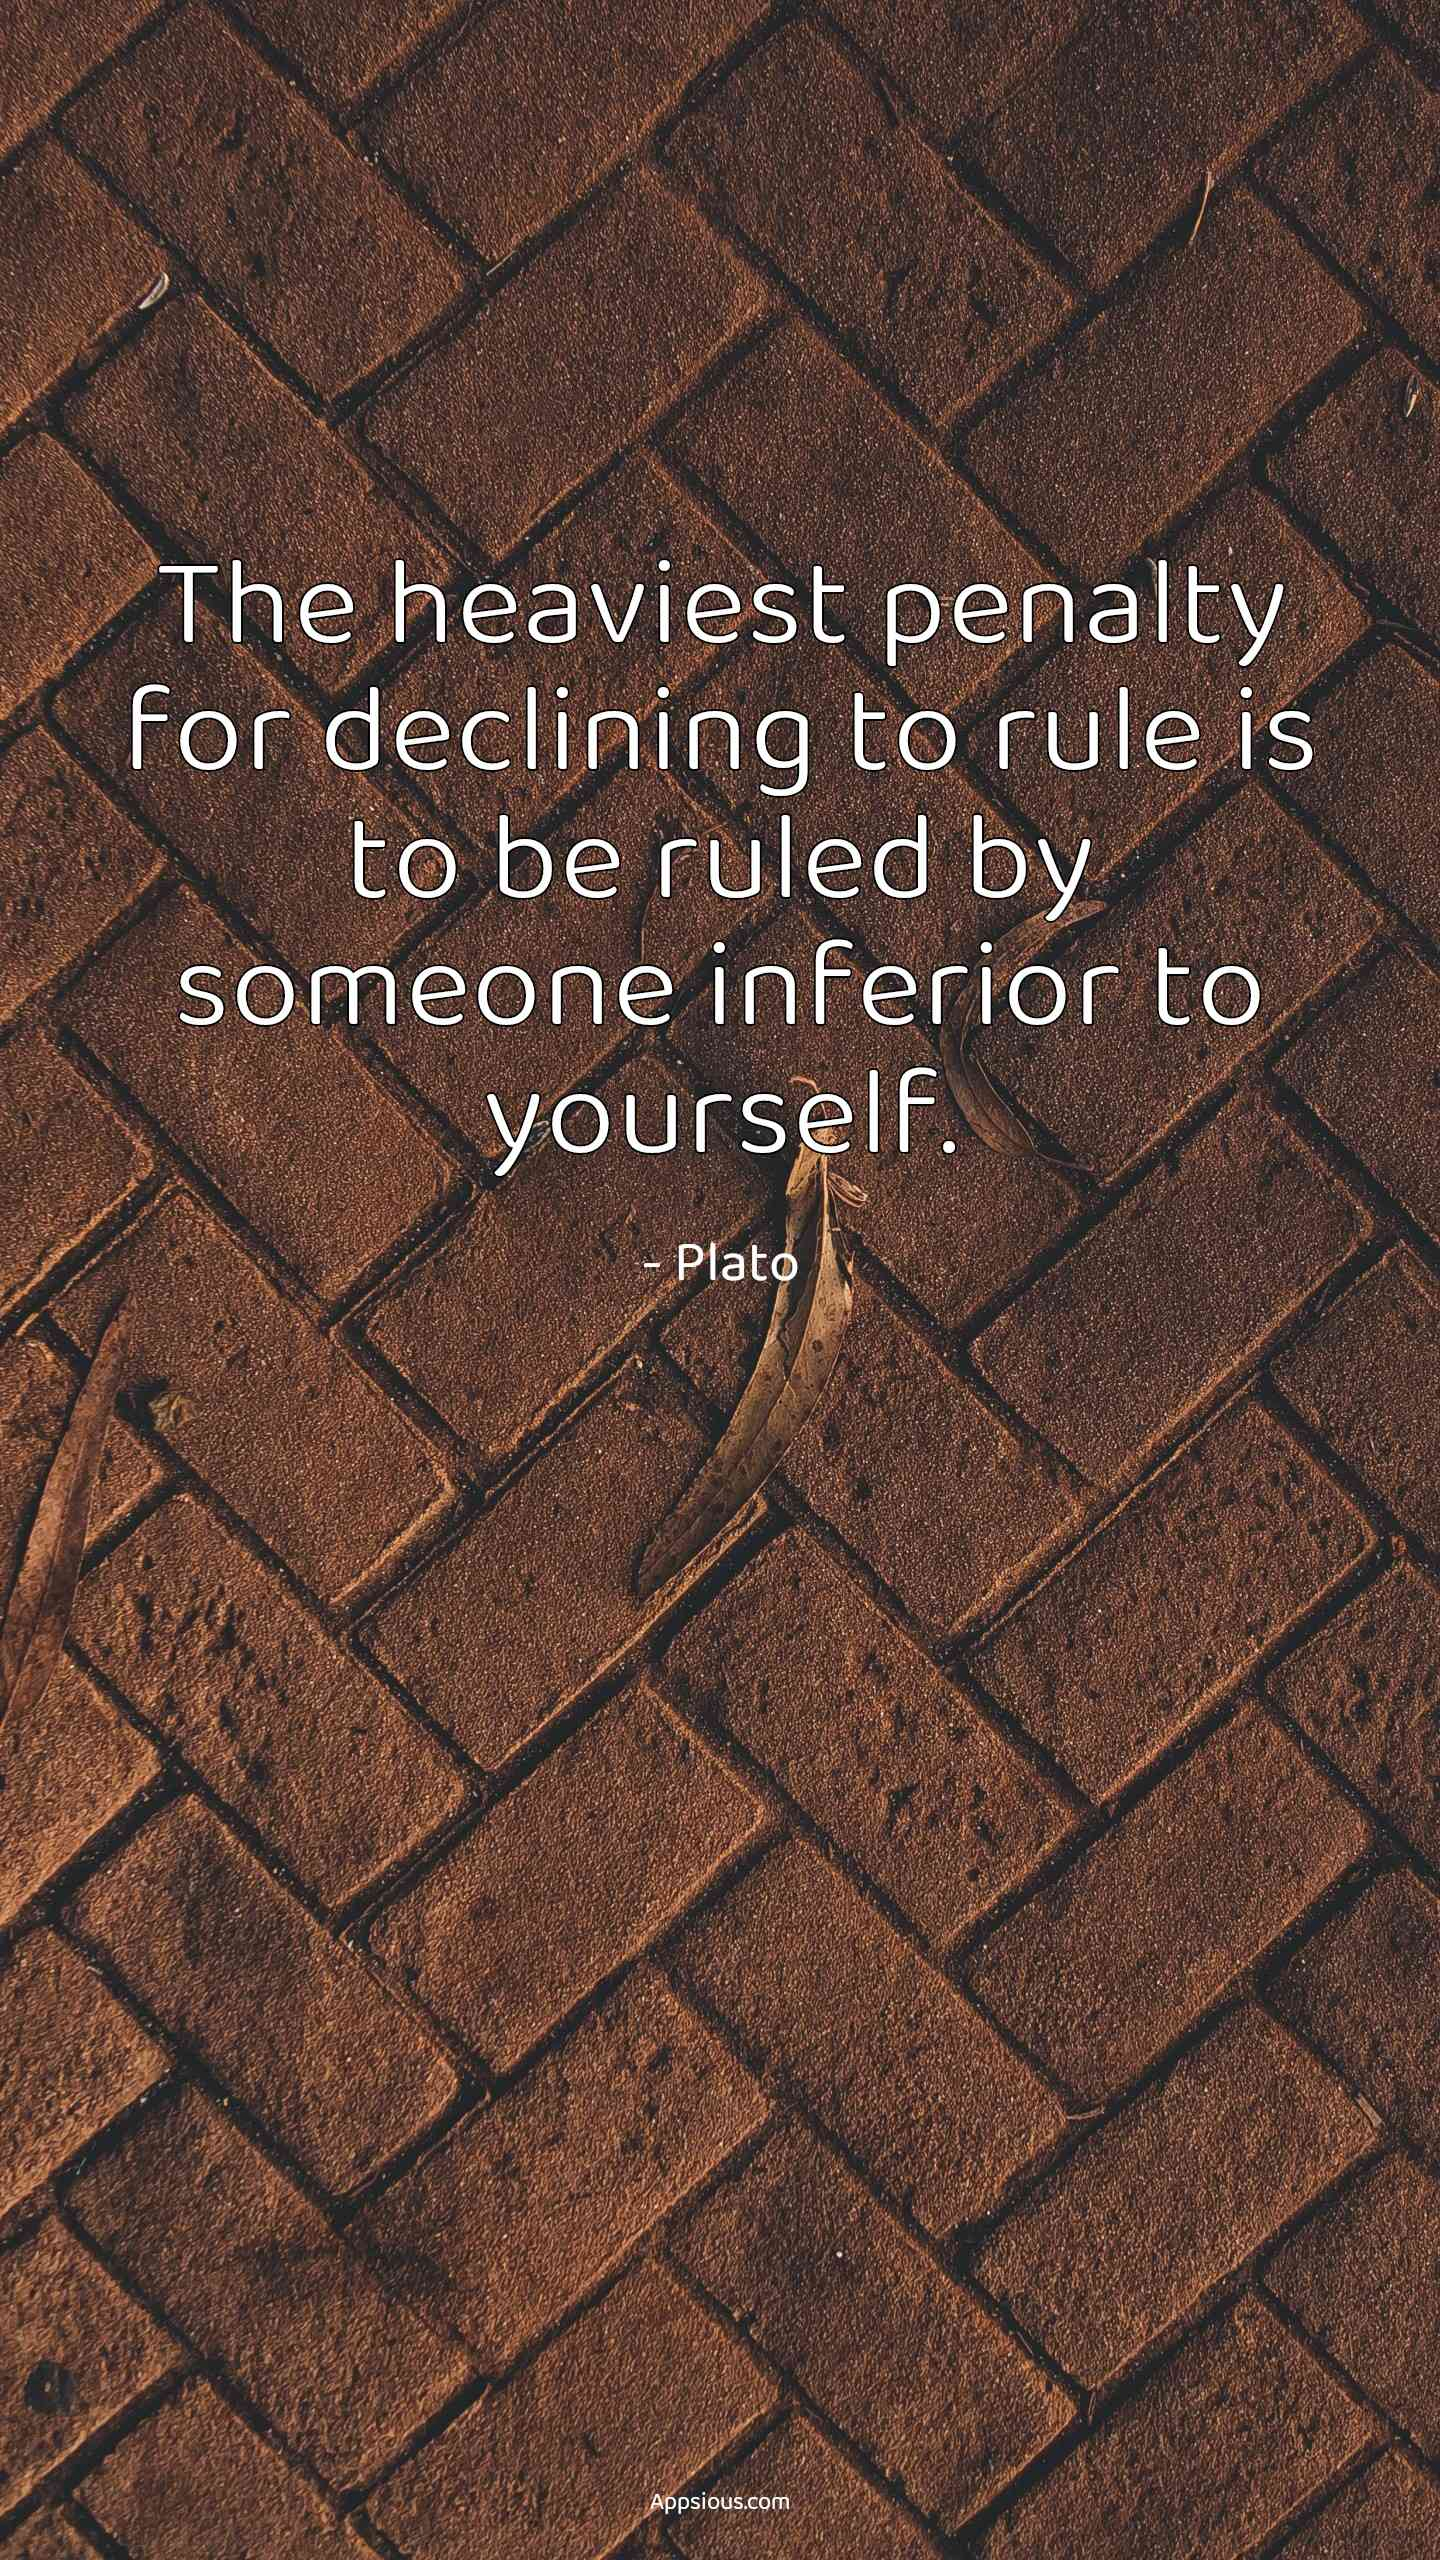 The heaviest penalty for declining to rule is to be ruled by someone inferior to yourself.